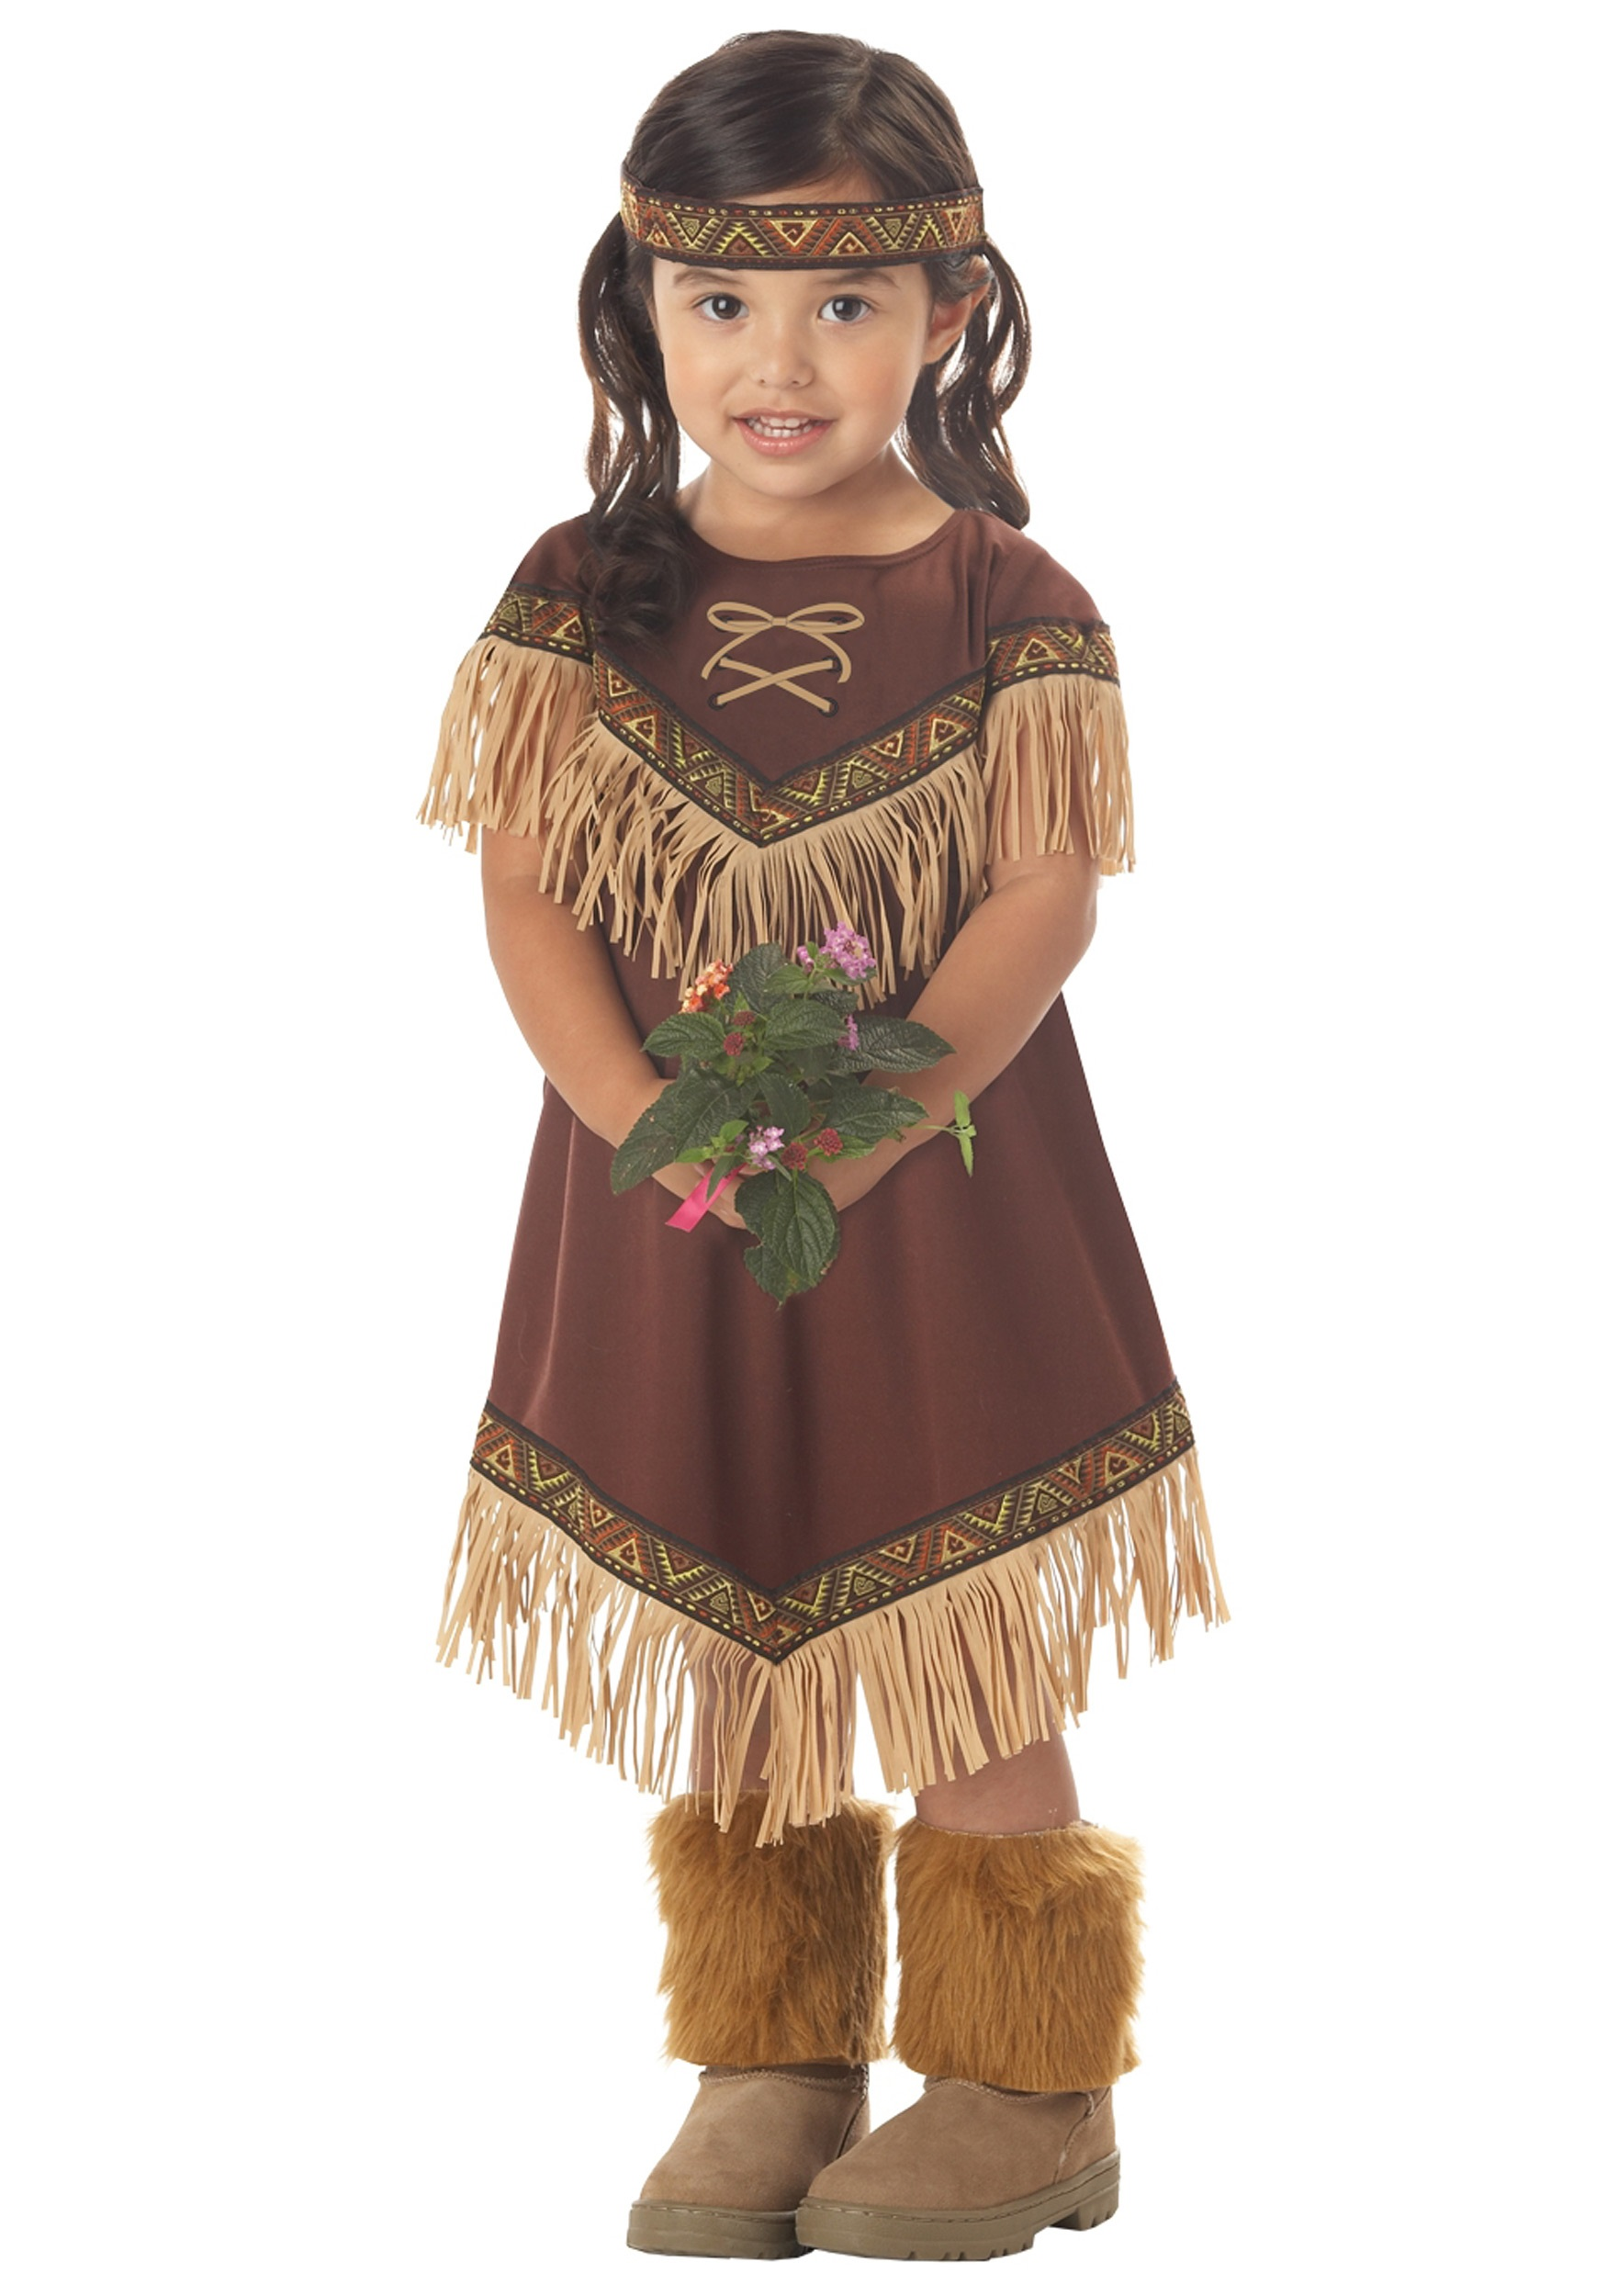 Toddler Liu0027l Indian Princess Costume  sc 1 st  Halloween Costumes & Native American Costumes - HalloweenCostumes.com